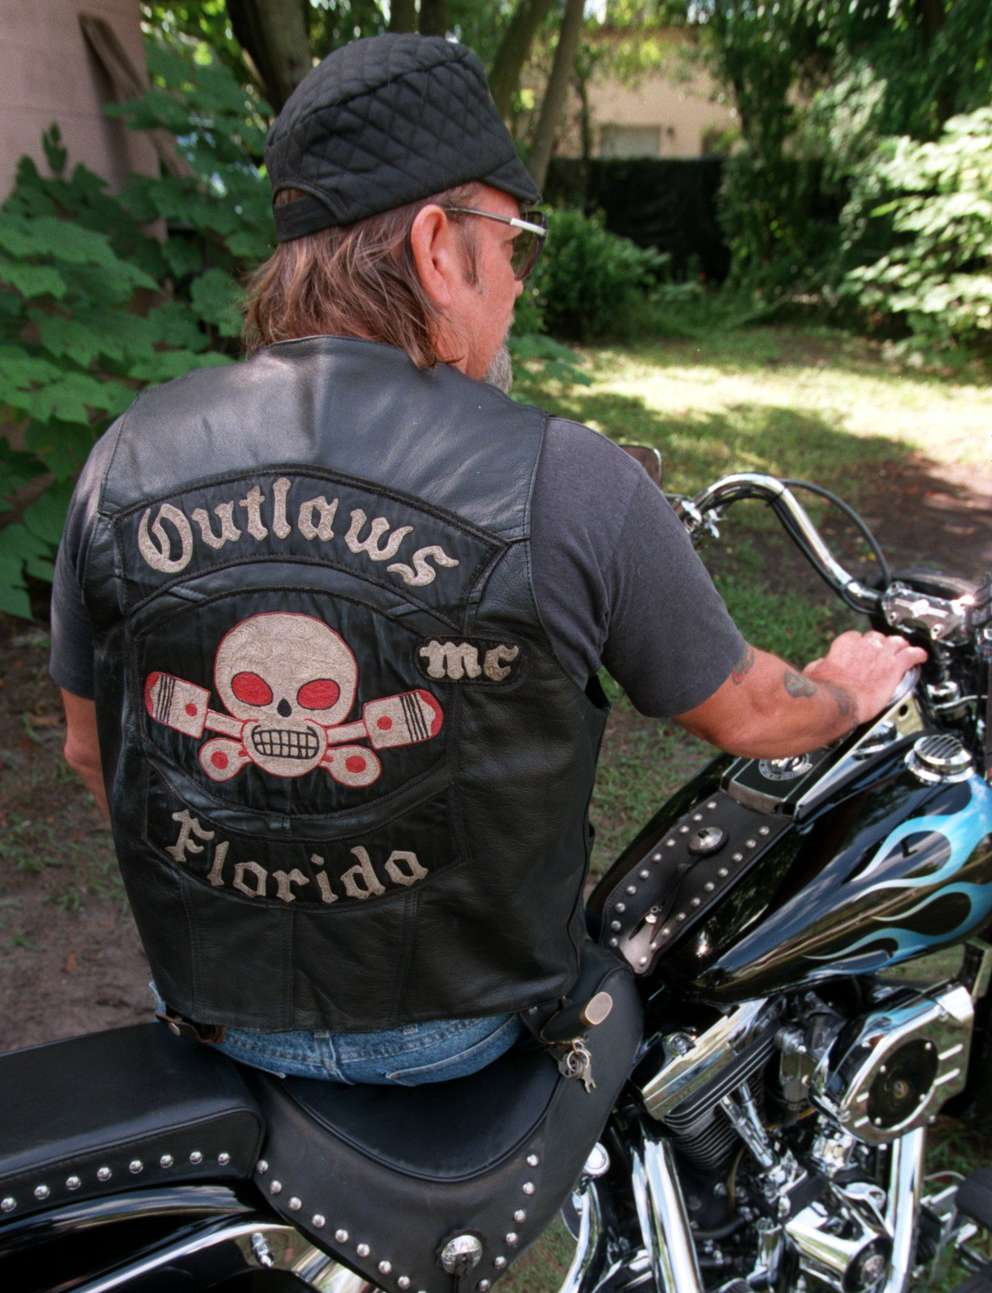 cd9e724fa7c3 An Outlaws motorcycle club leader's assassination adds to Tampa ...